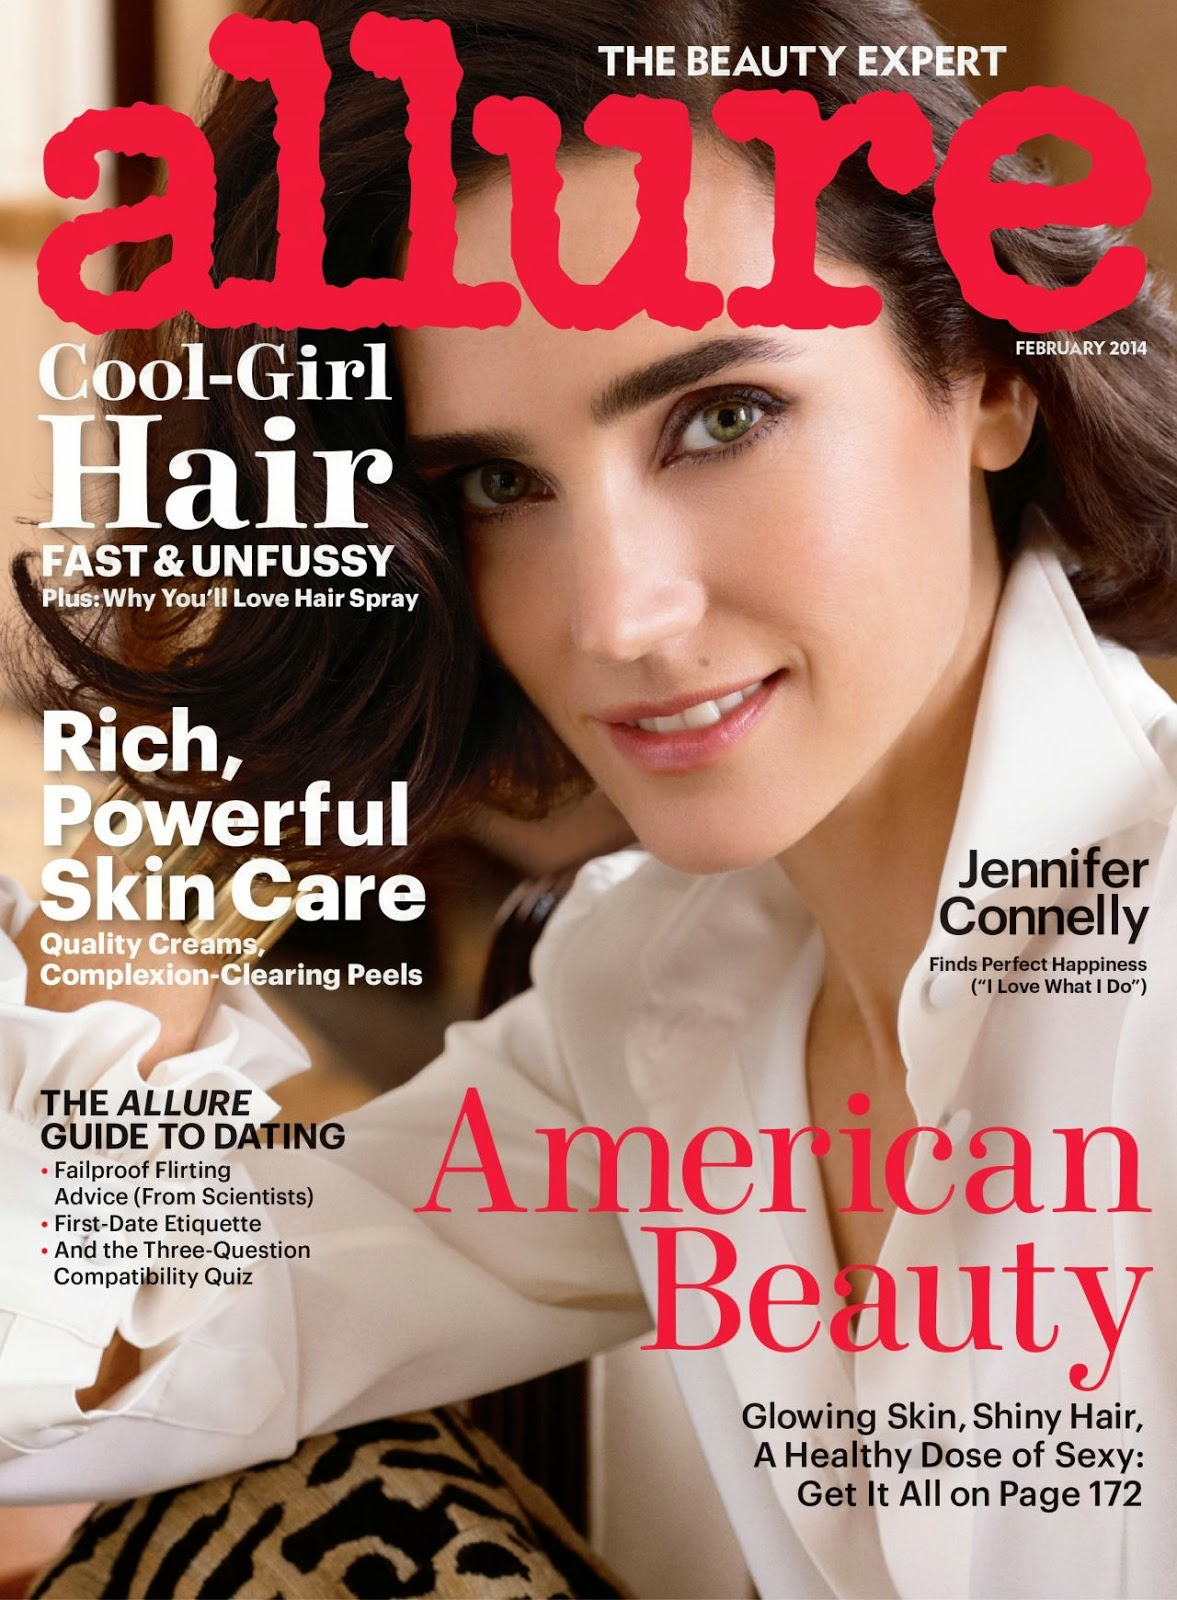 Magazine Photoshoot : Jennifer Connelly Photoshot For Allure Magazine February 2014 Issue